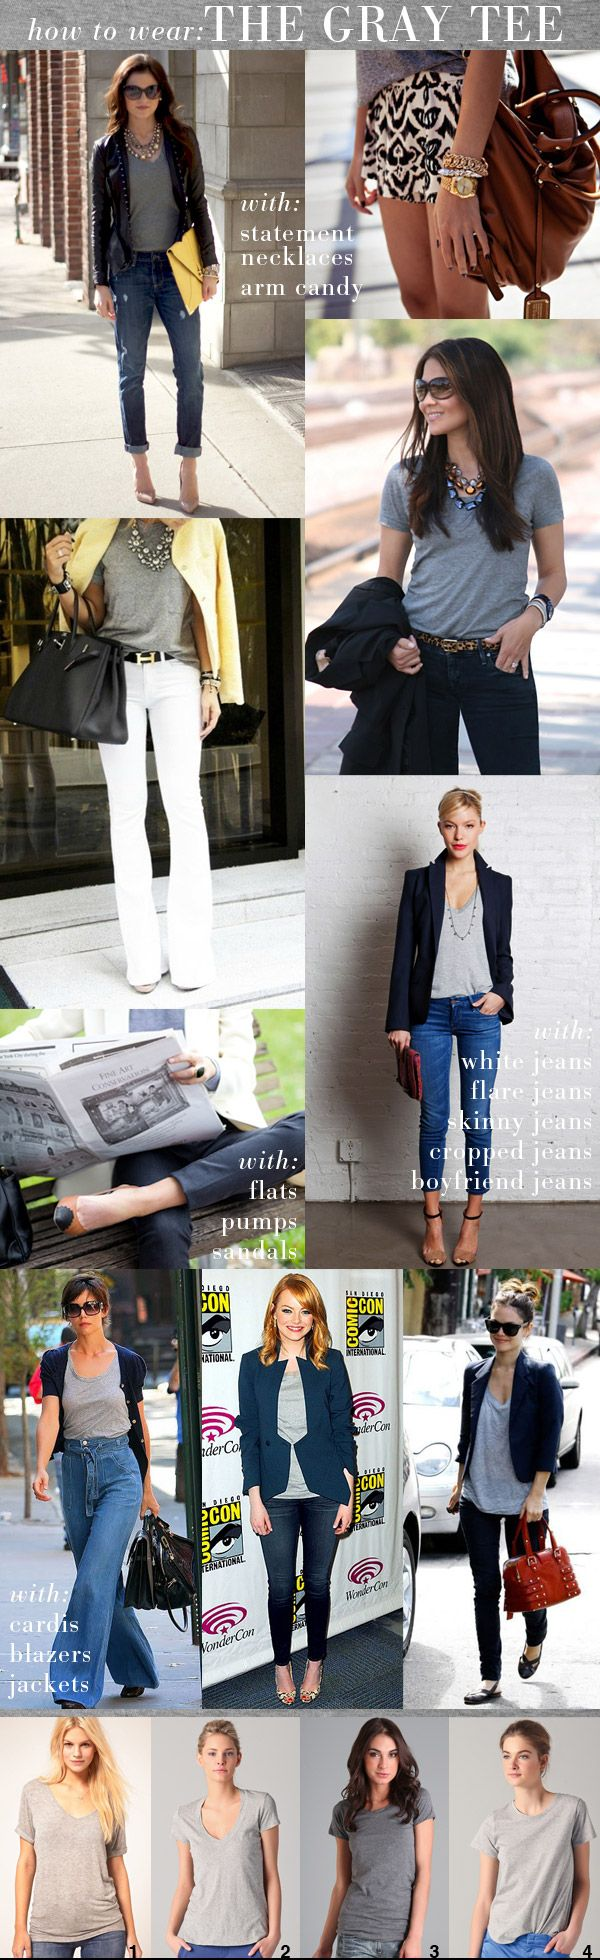 I always gravitate toward the grey tee, but sometimes it's hard to wear without looking to blah. #wahm #casualchic  How To Wear A Grey Tee via Small Shop Studio